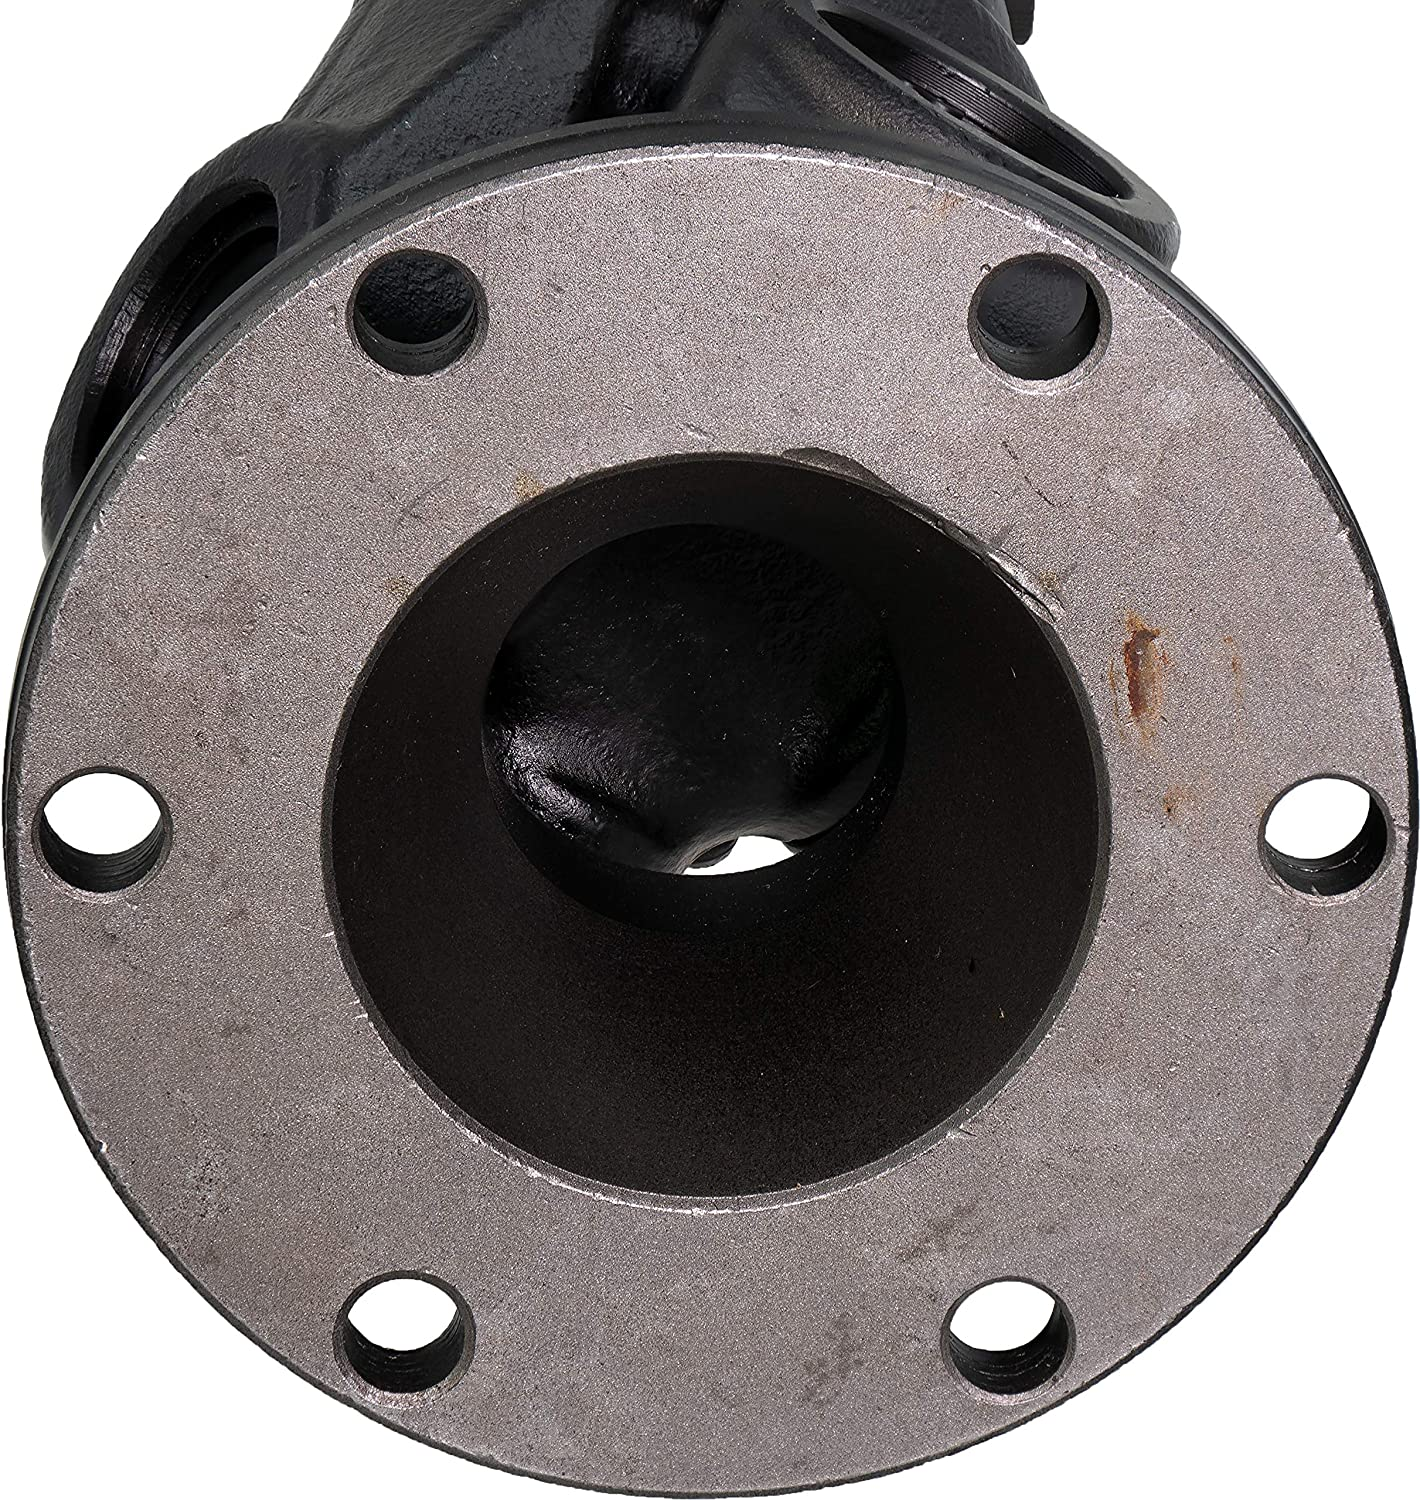 APDTY 300009 Front Propeller Drive Shaft Fits 2001-2007 Dodge Dakota 01-03 Durango 2006 Mitsubishi Raider Upgraded Dual U-Joint Design; Auto-Trans /& 4x4 Only; Replaces 52853431AA, 52853432AA